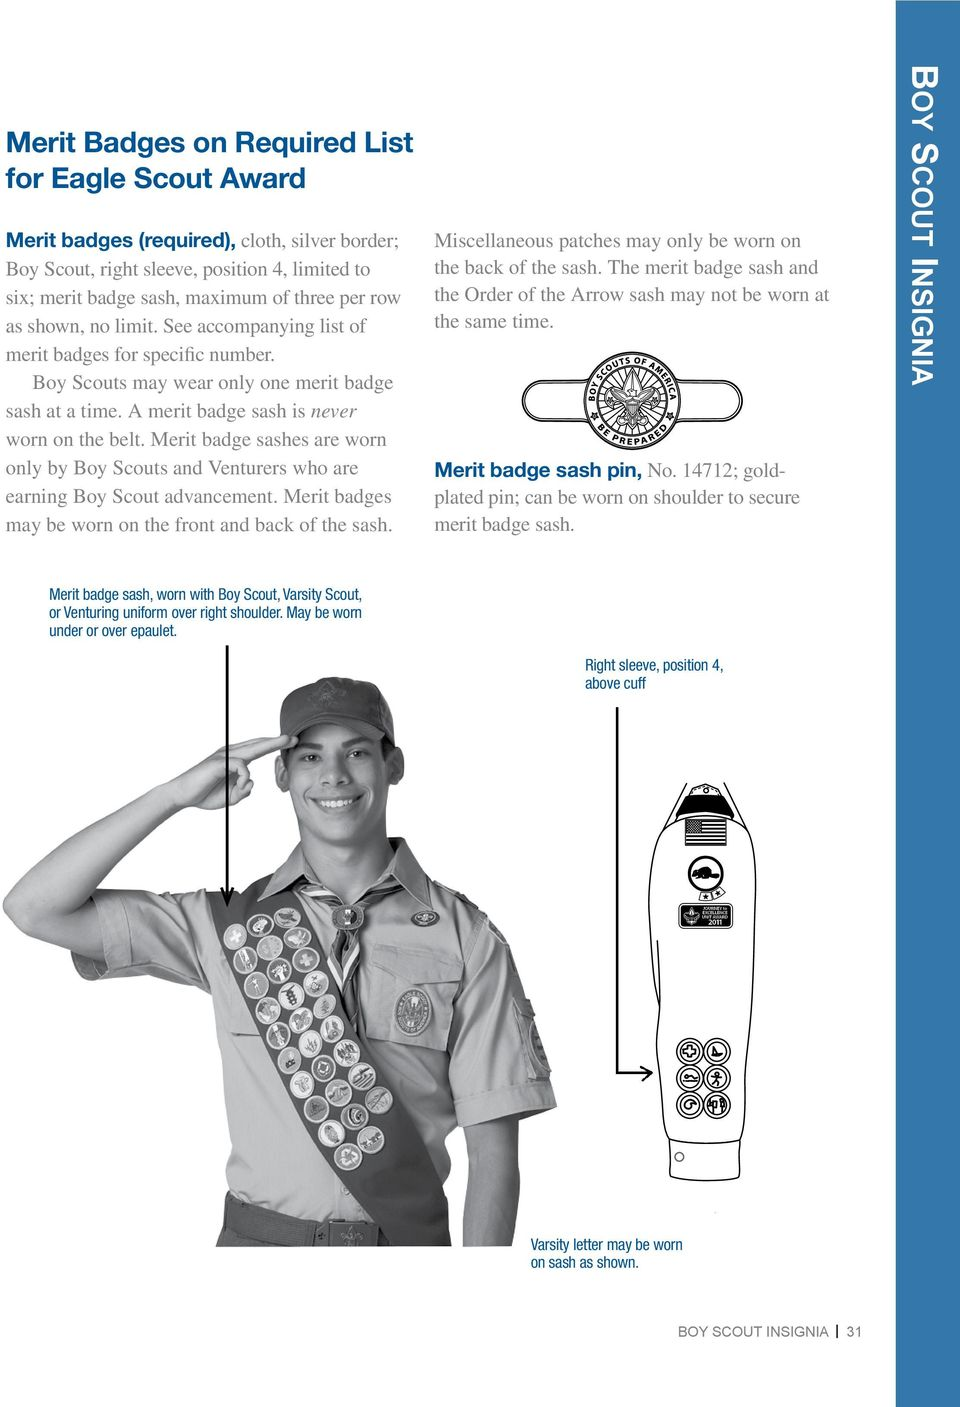 Merit badge sashes are worn only by Boy Scouts and Venturers who are earning Boy Scout advancement. Merit badges may be worn on the front and back of the sash.